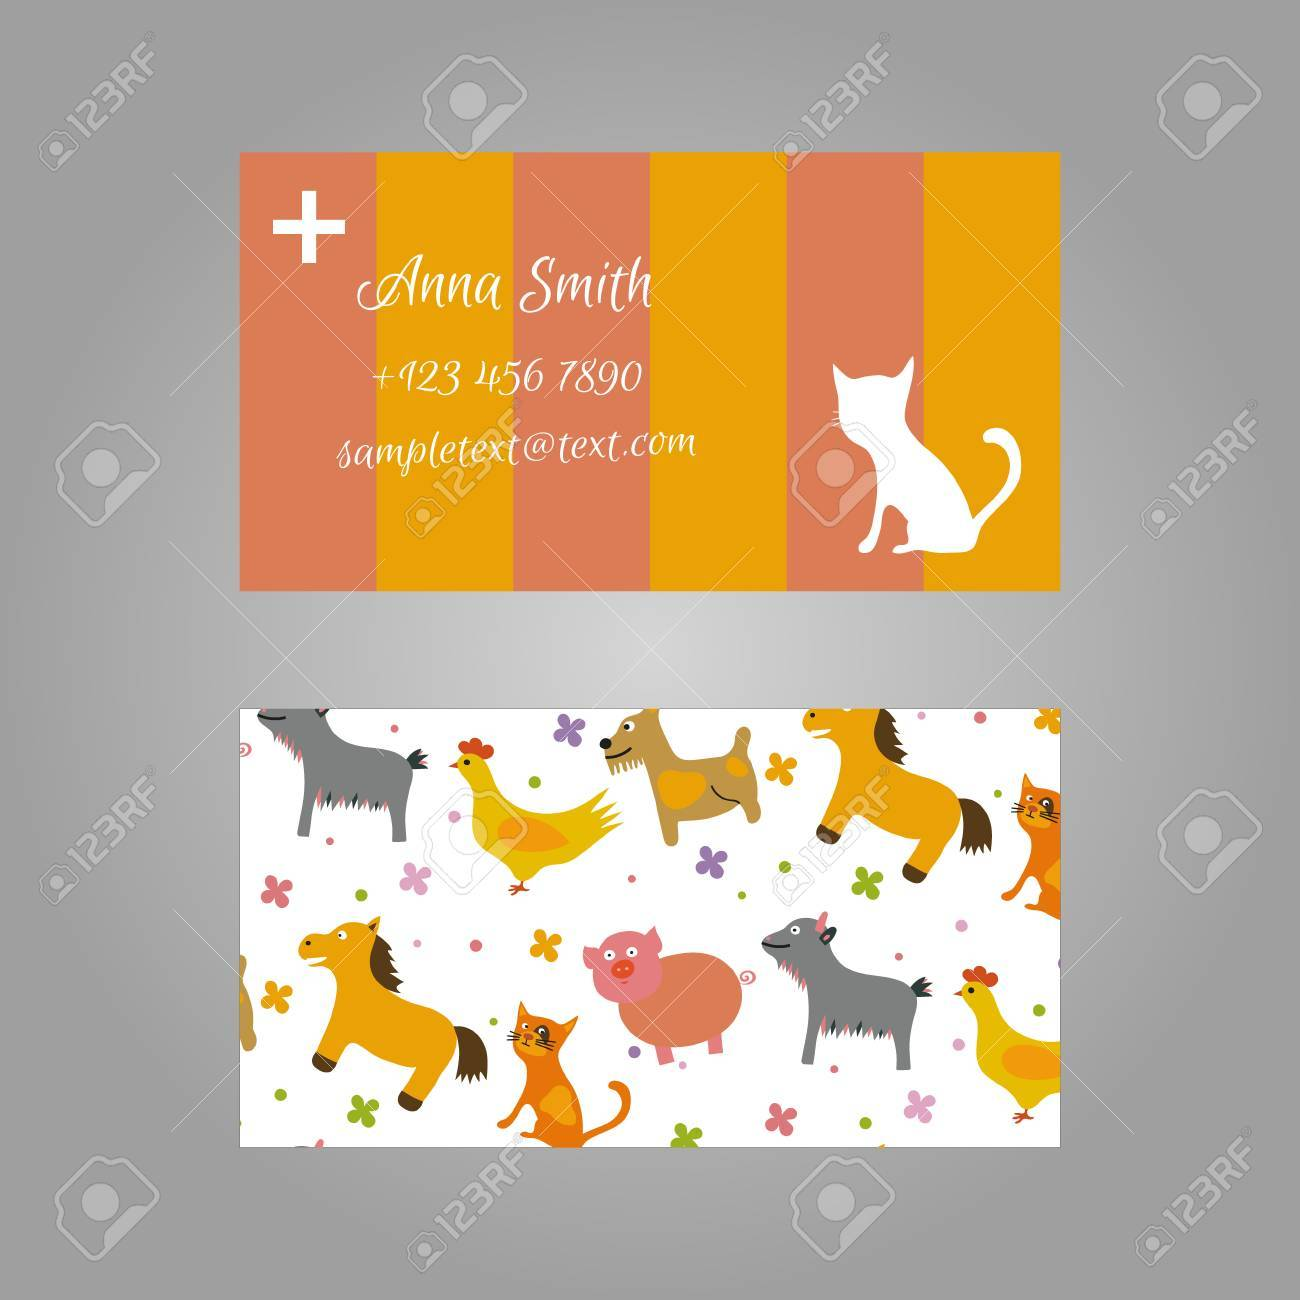 Cute Business Card For Vet Royalty Free Cliparts, Vectors, And Stock ...